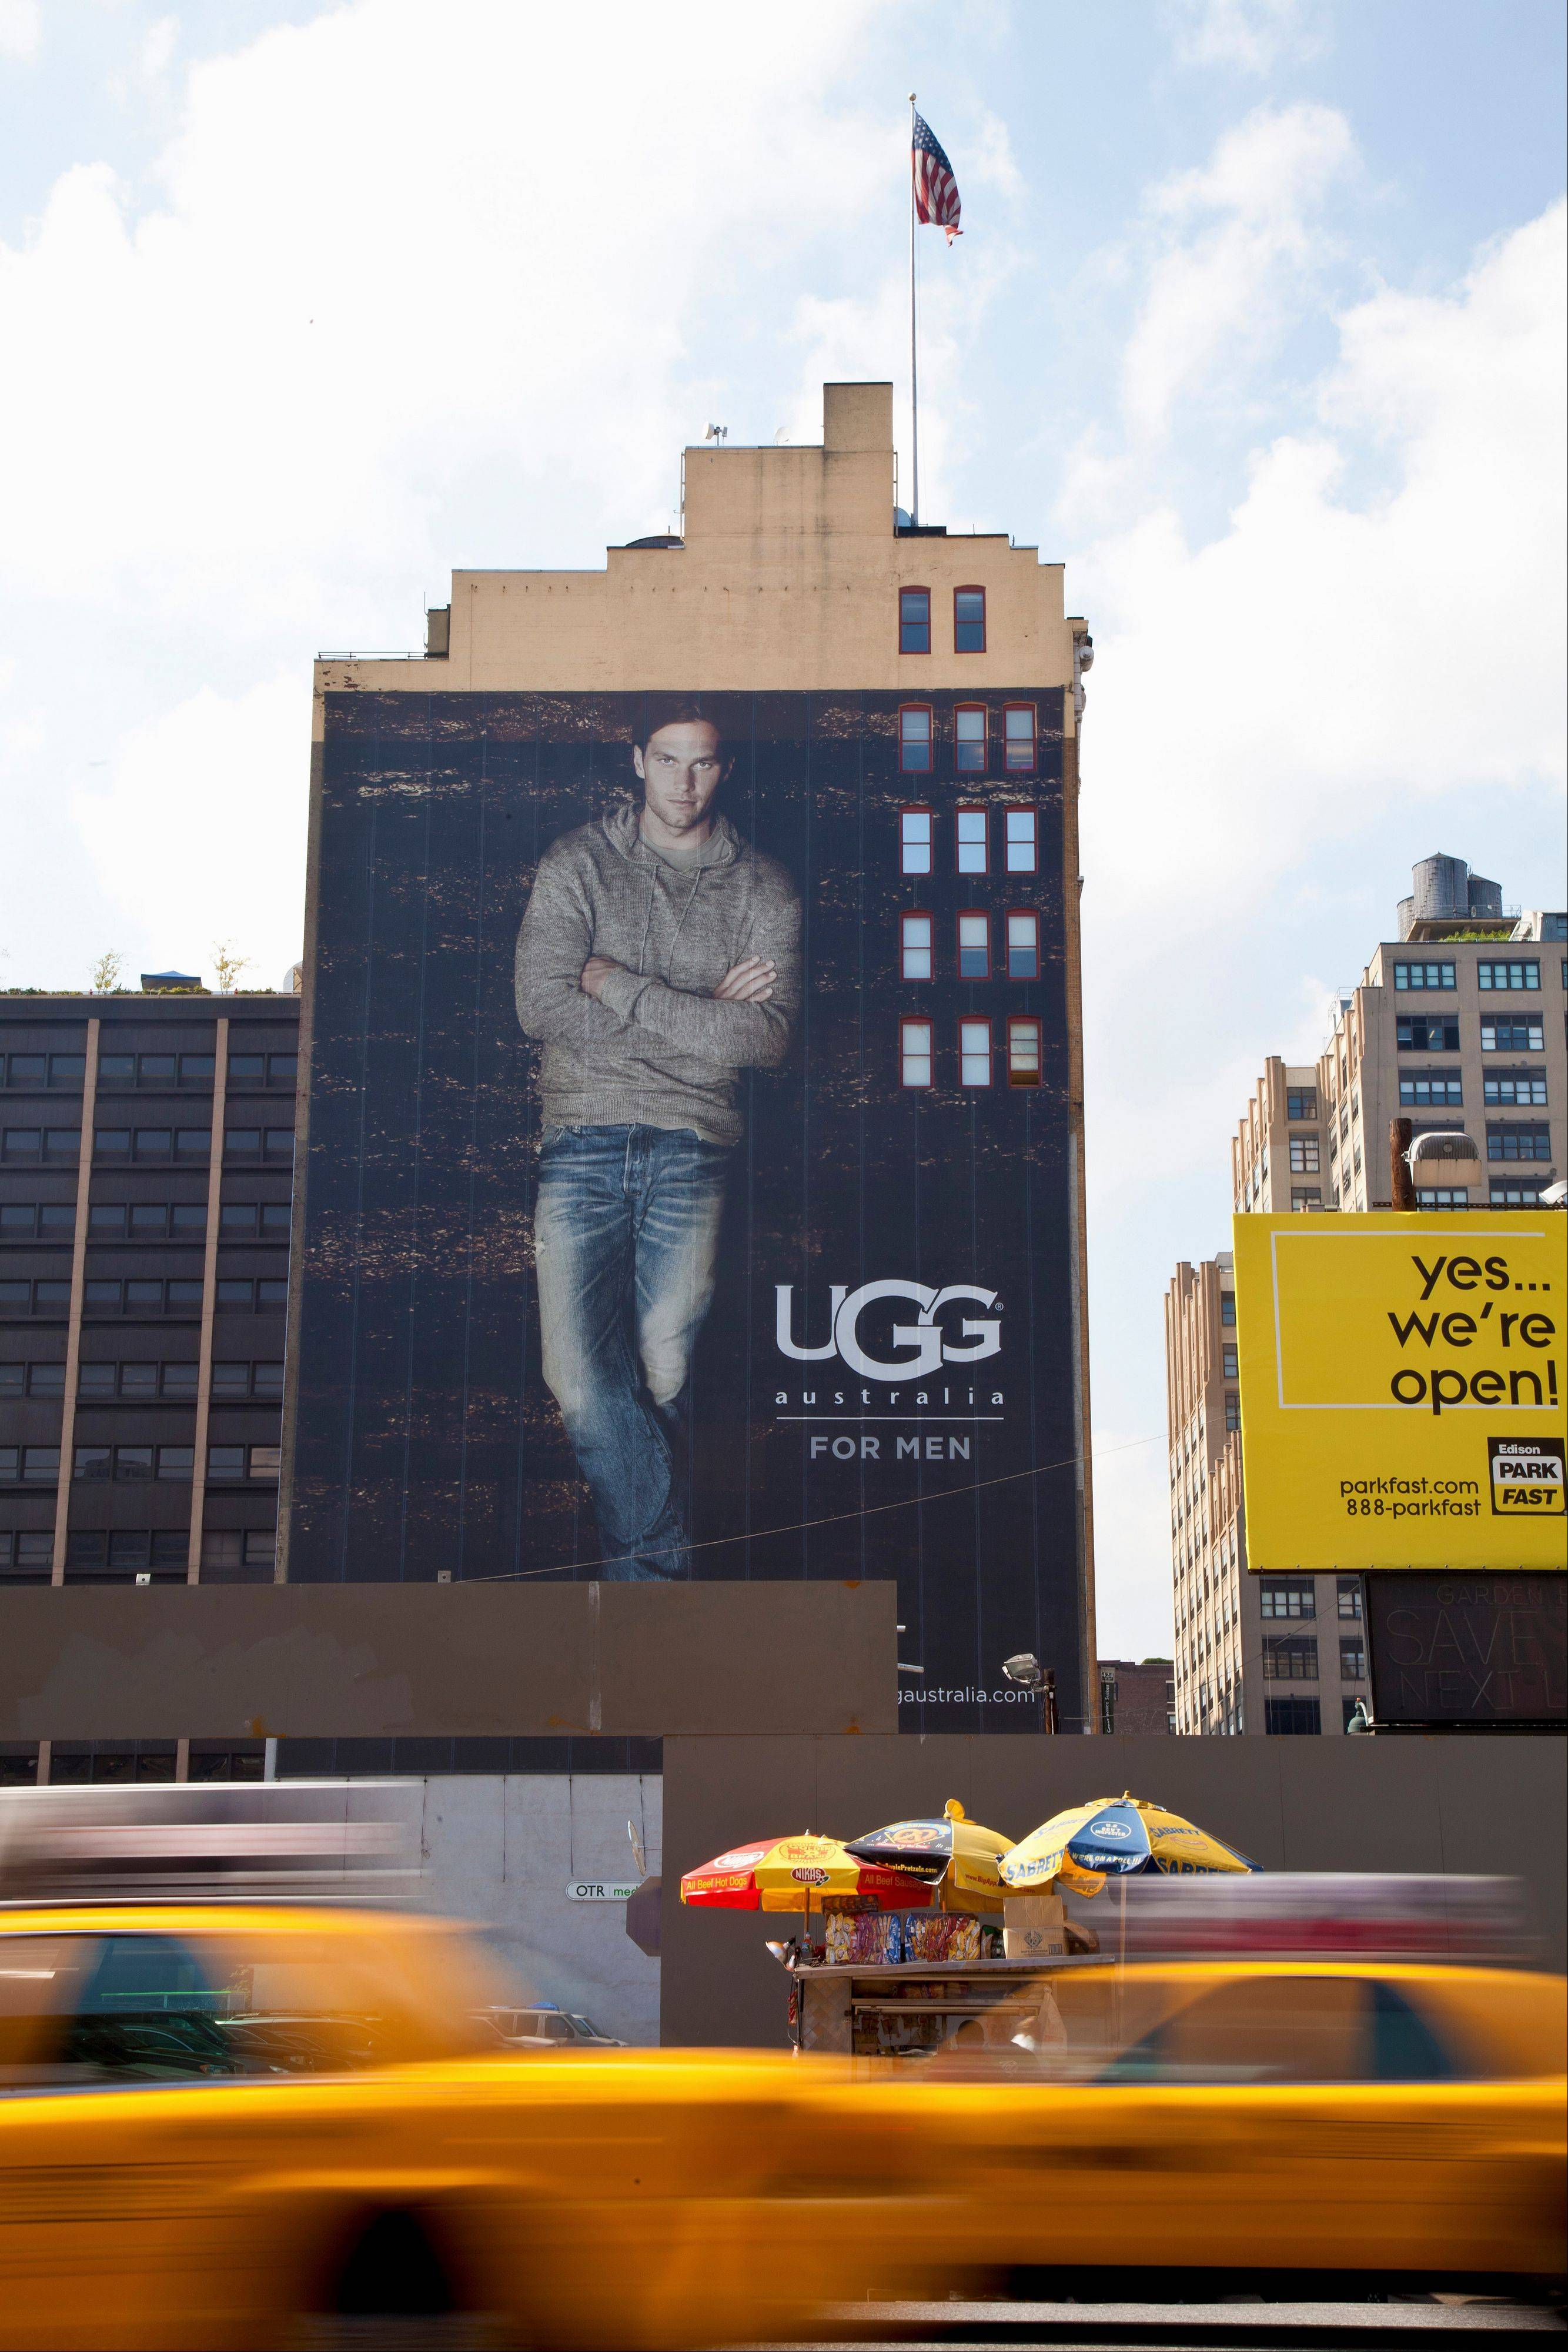 New England Patriots NFL football quarterback Tom Brady appears is the national spokesman for UGG, a shoemaker best known for women's boots.